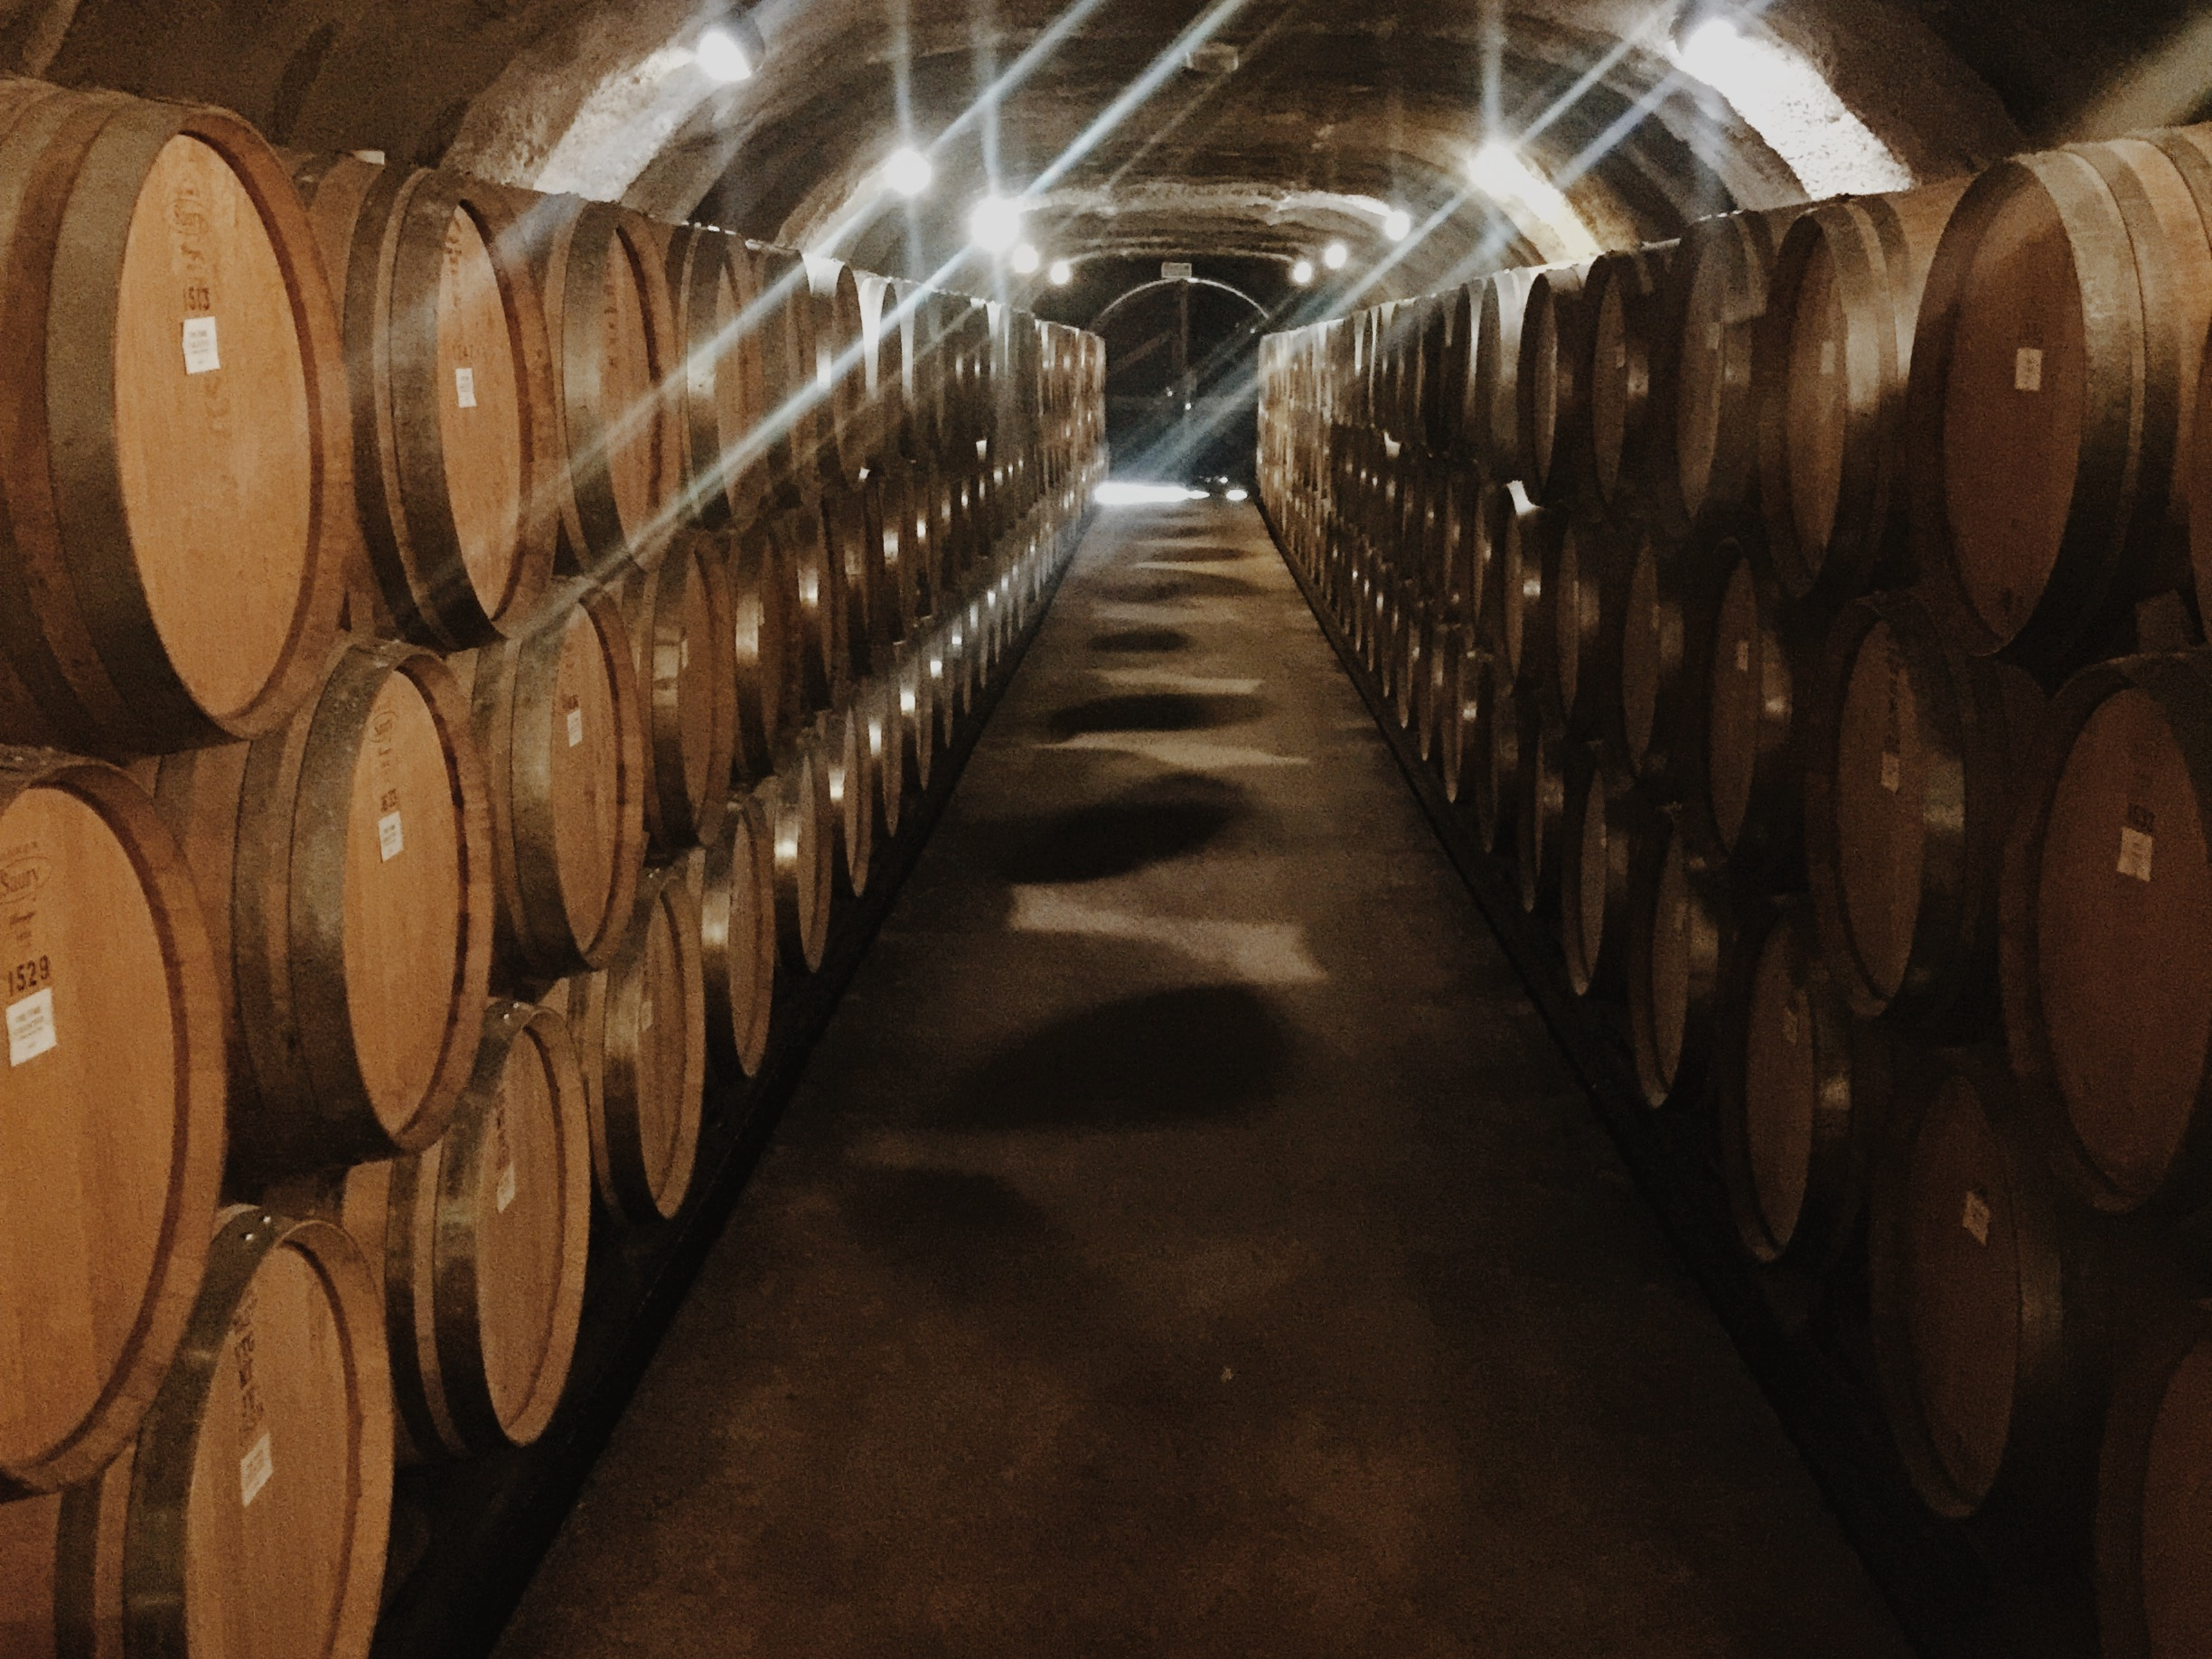 New Zealand's largest wine cave